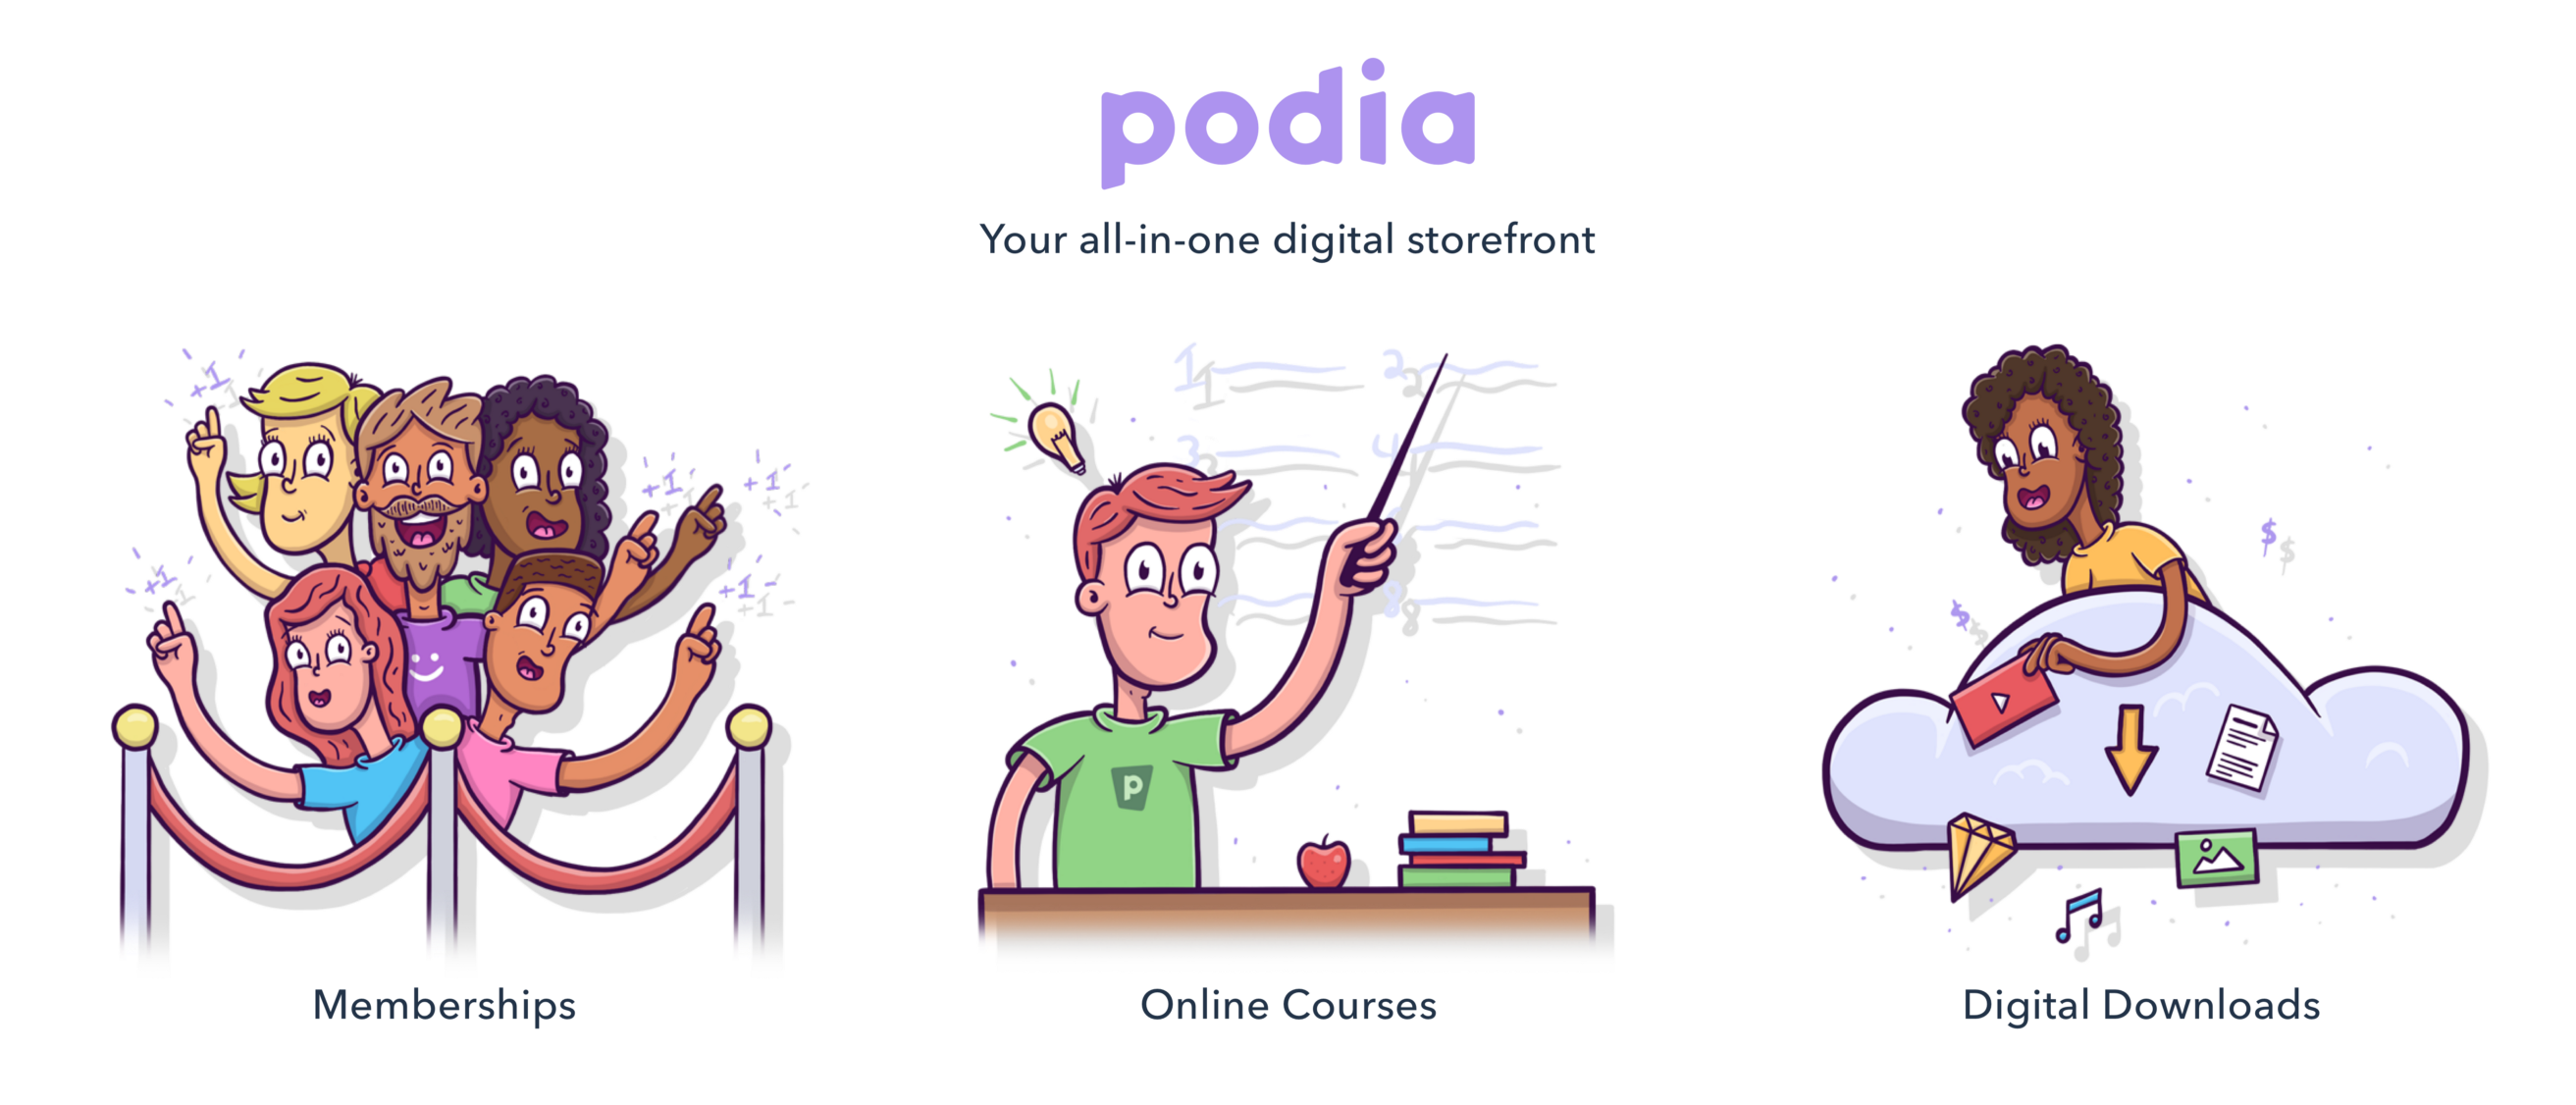 podia all in one digital storefront